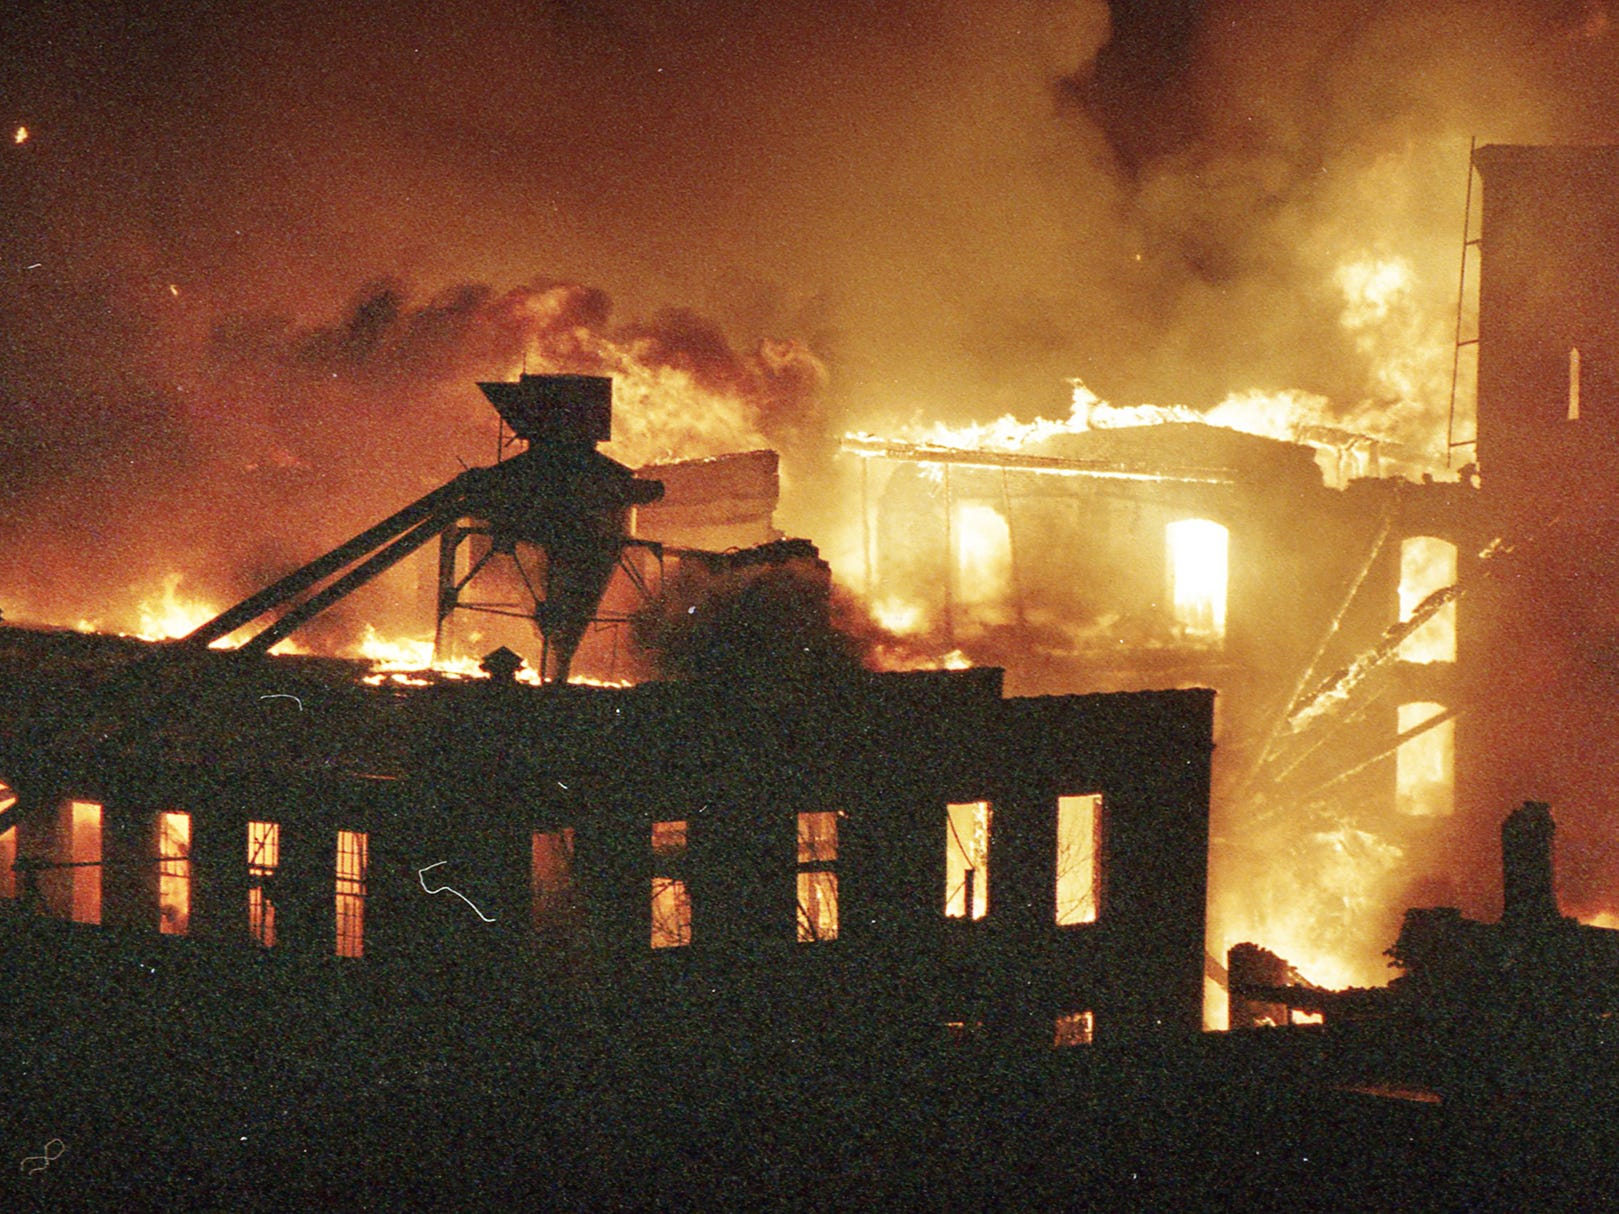 Fire rages inside the Thonet complex. A fire began at the former Thonet Furniture plant at 491 East Princess Street  in York on December 11, 1993. Eventually, the four alarm fire spread through the complex of buildings and several other properties.